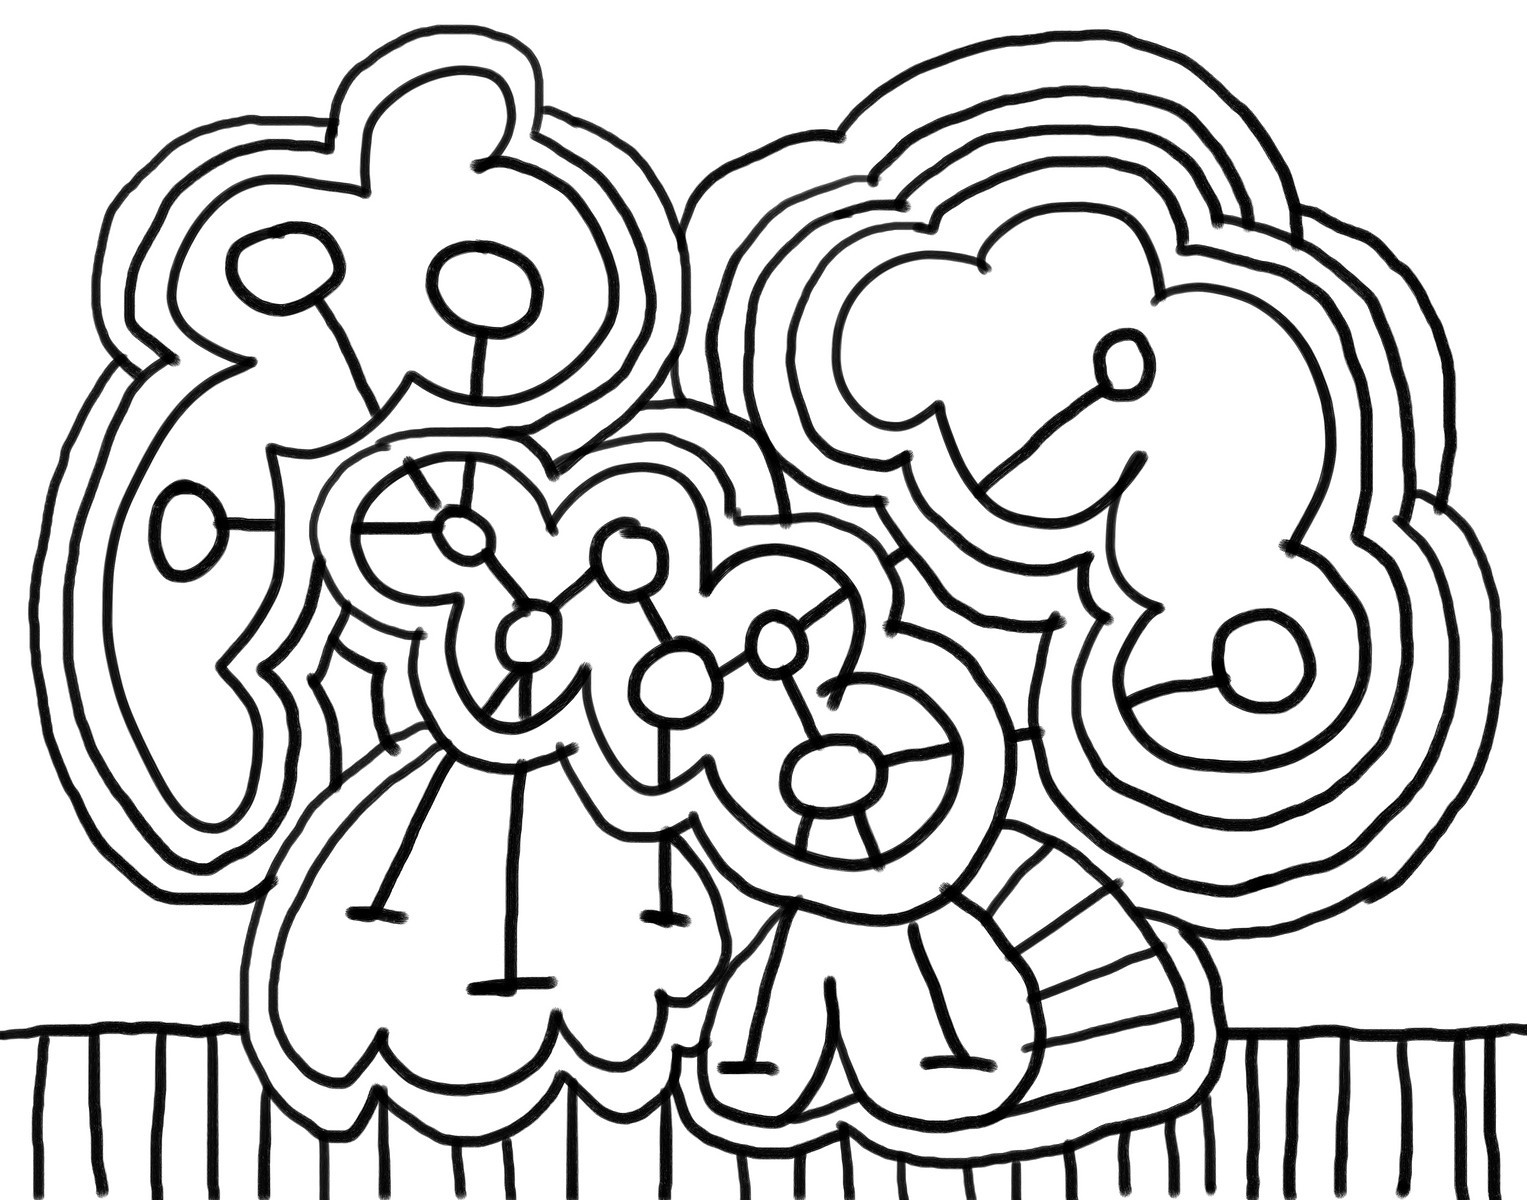 abstract coloring pages for kids free printable abstract coloring pages for kids coloring kids for pages abstract